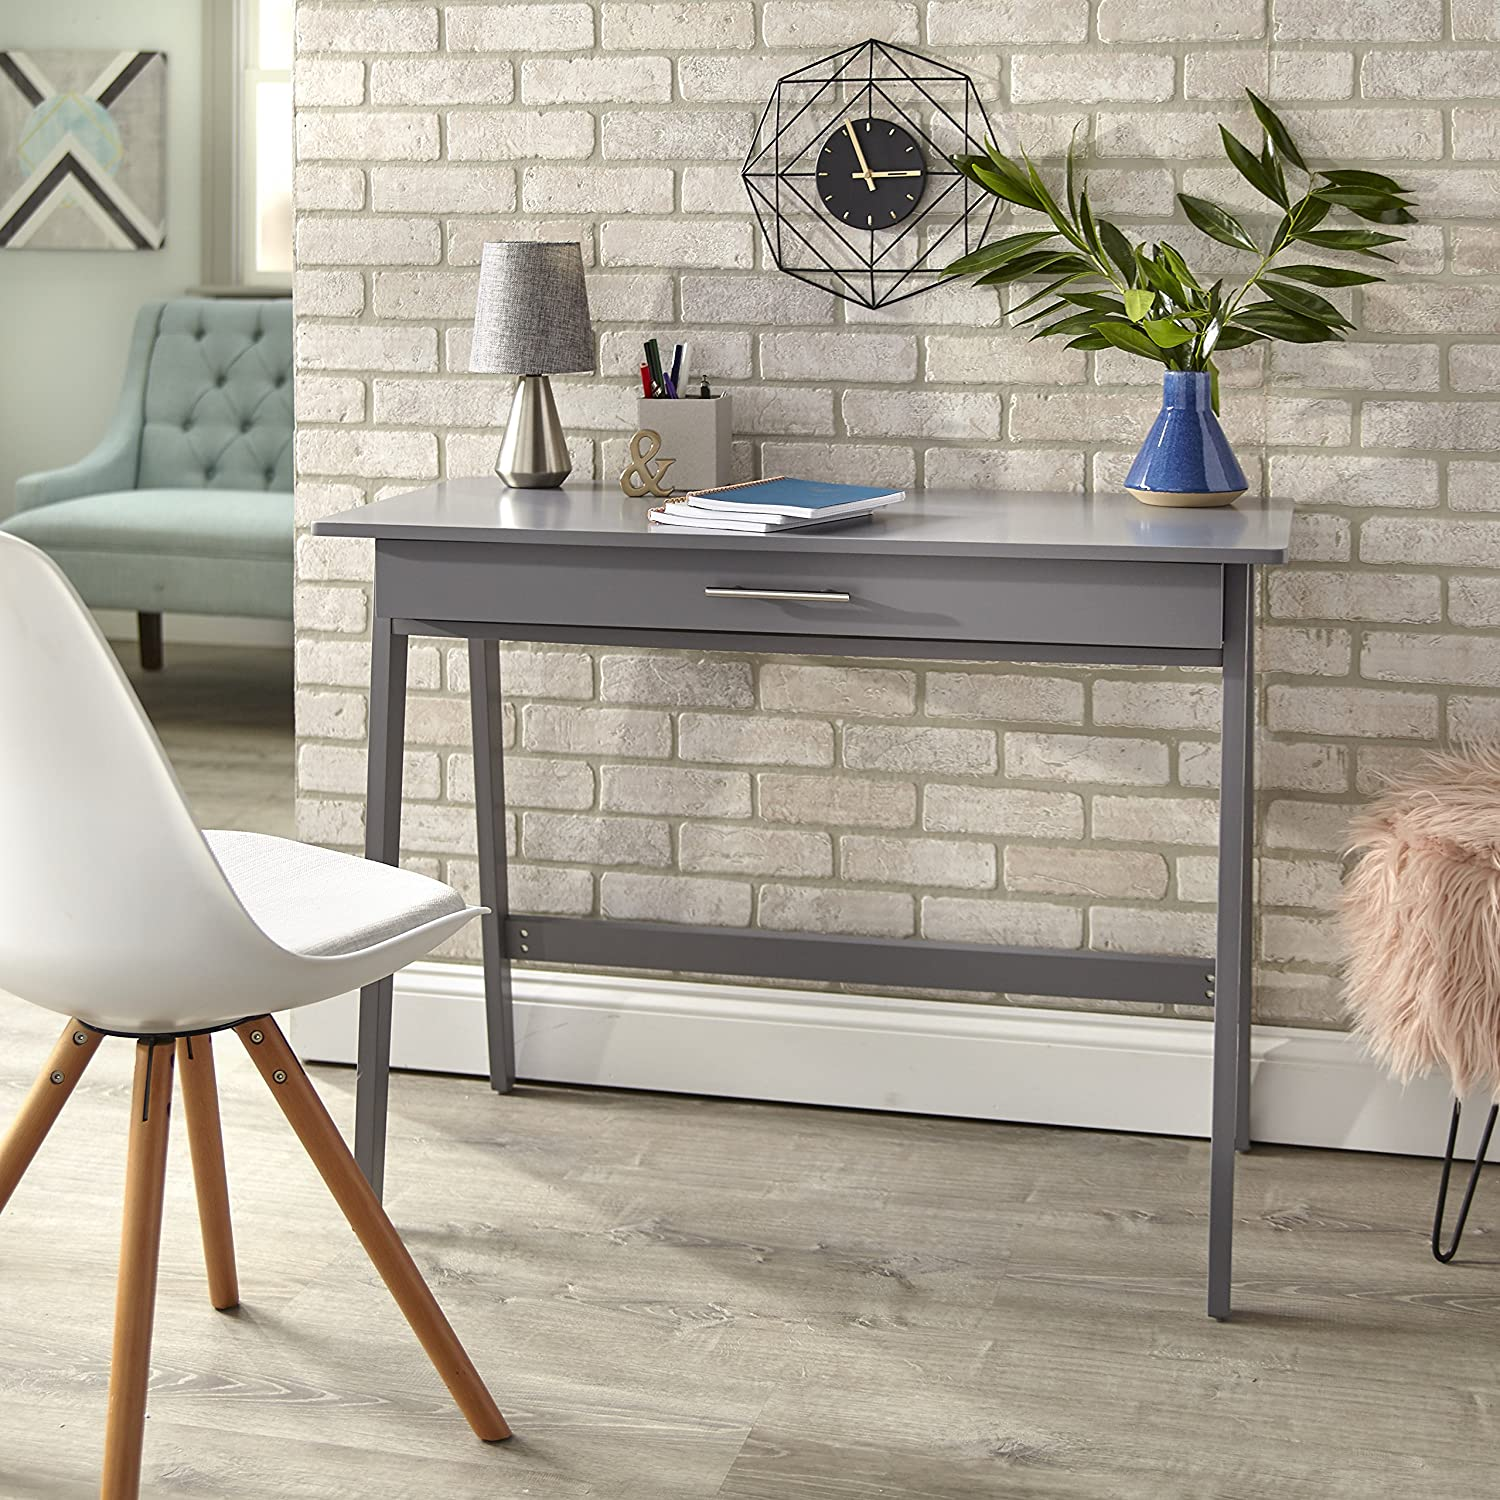 Target Marketing Systems 60707GRY Renata Wooden Home Office Desk, Gray